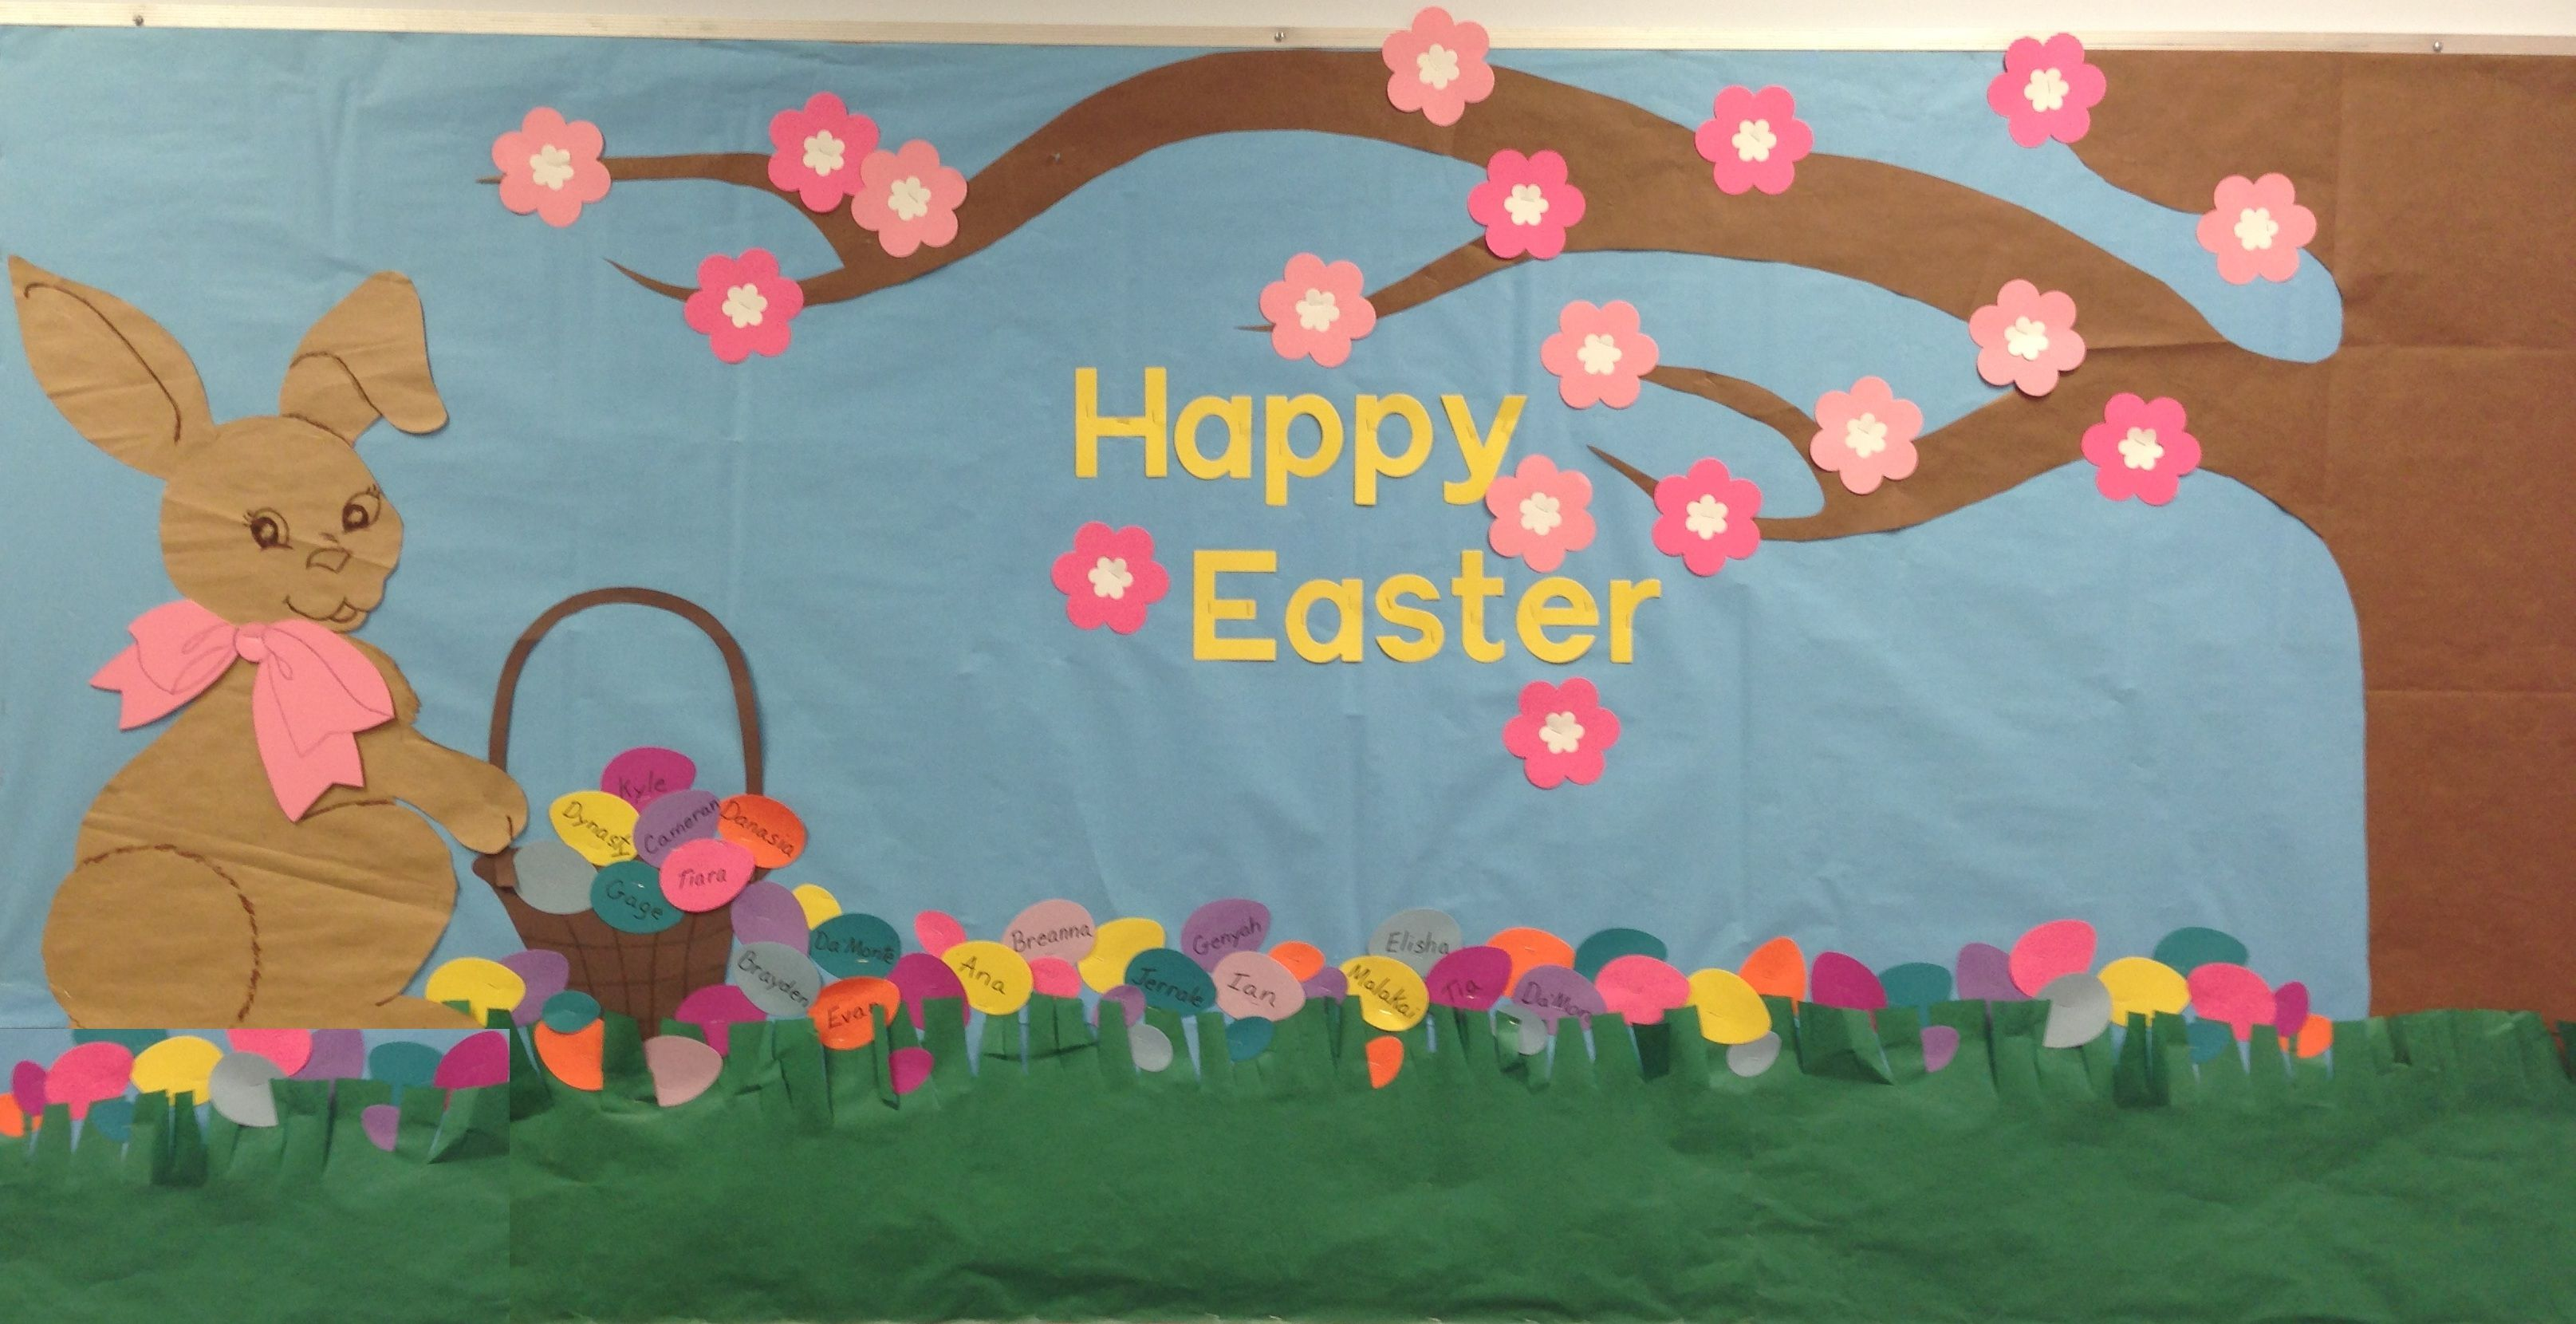 Happy Easter! - Holiday Bulletin Board Idea | Easter ...